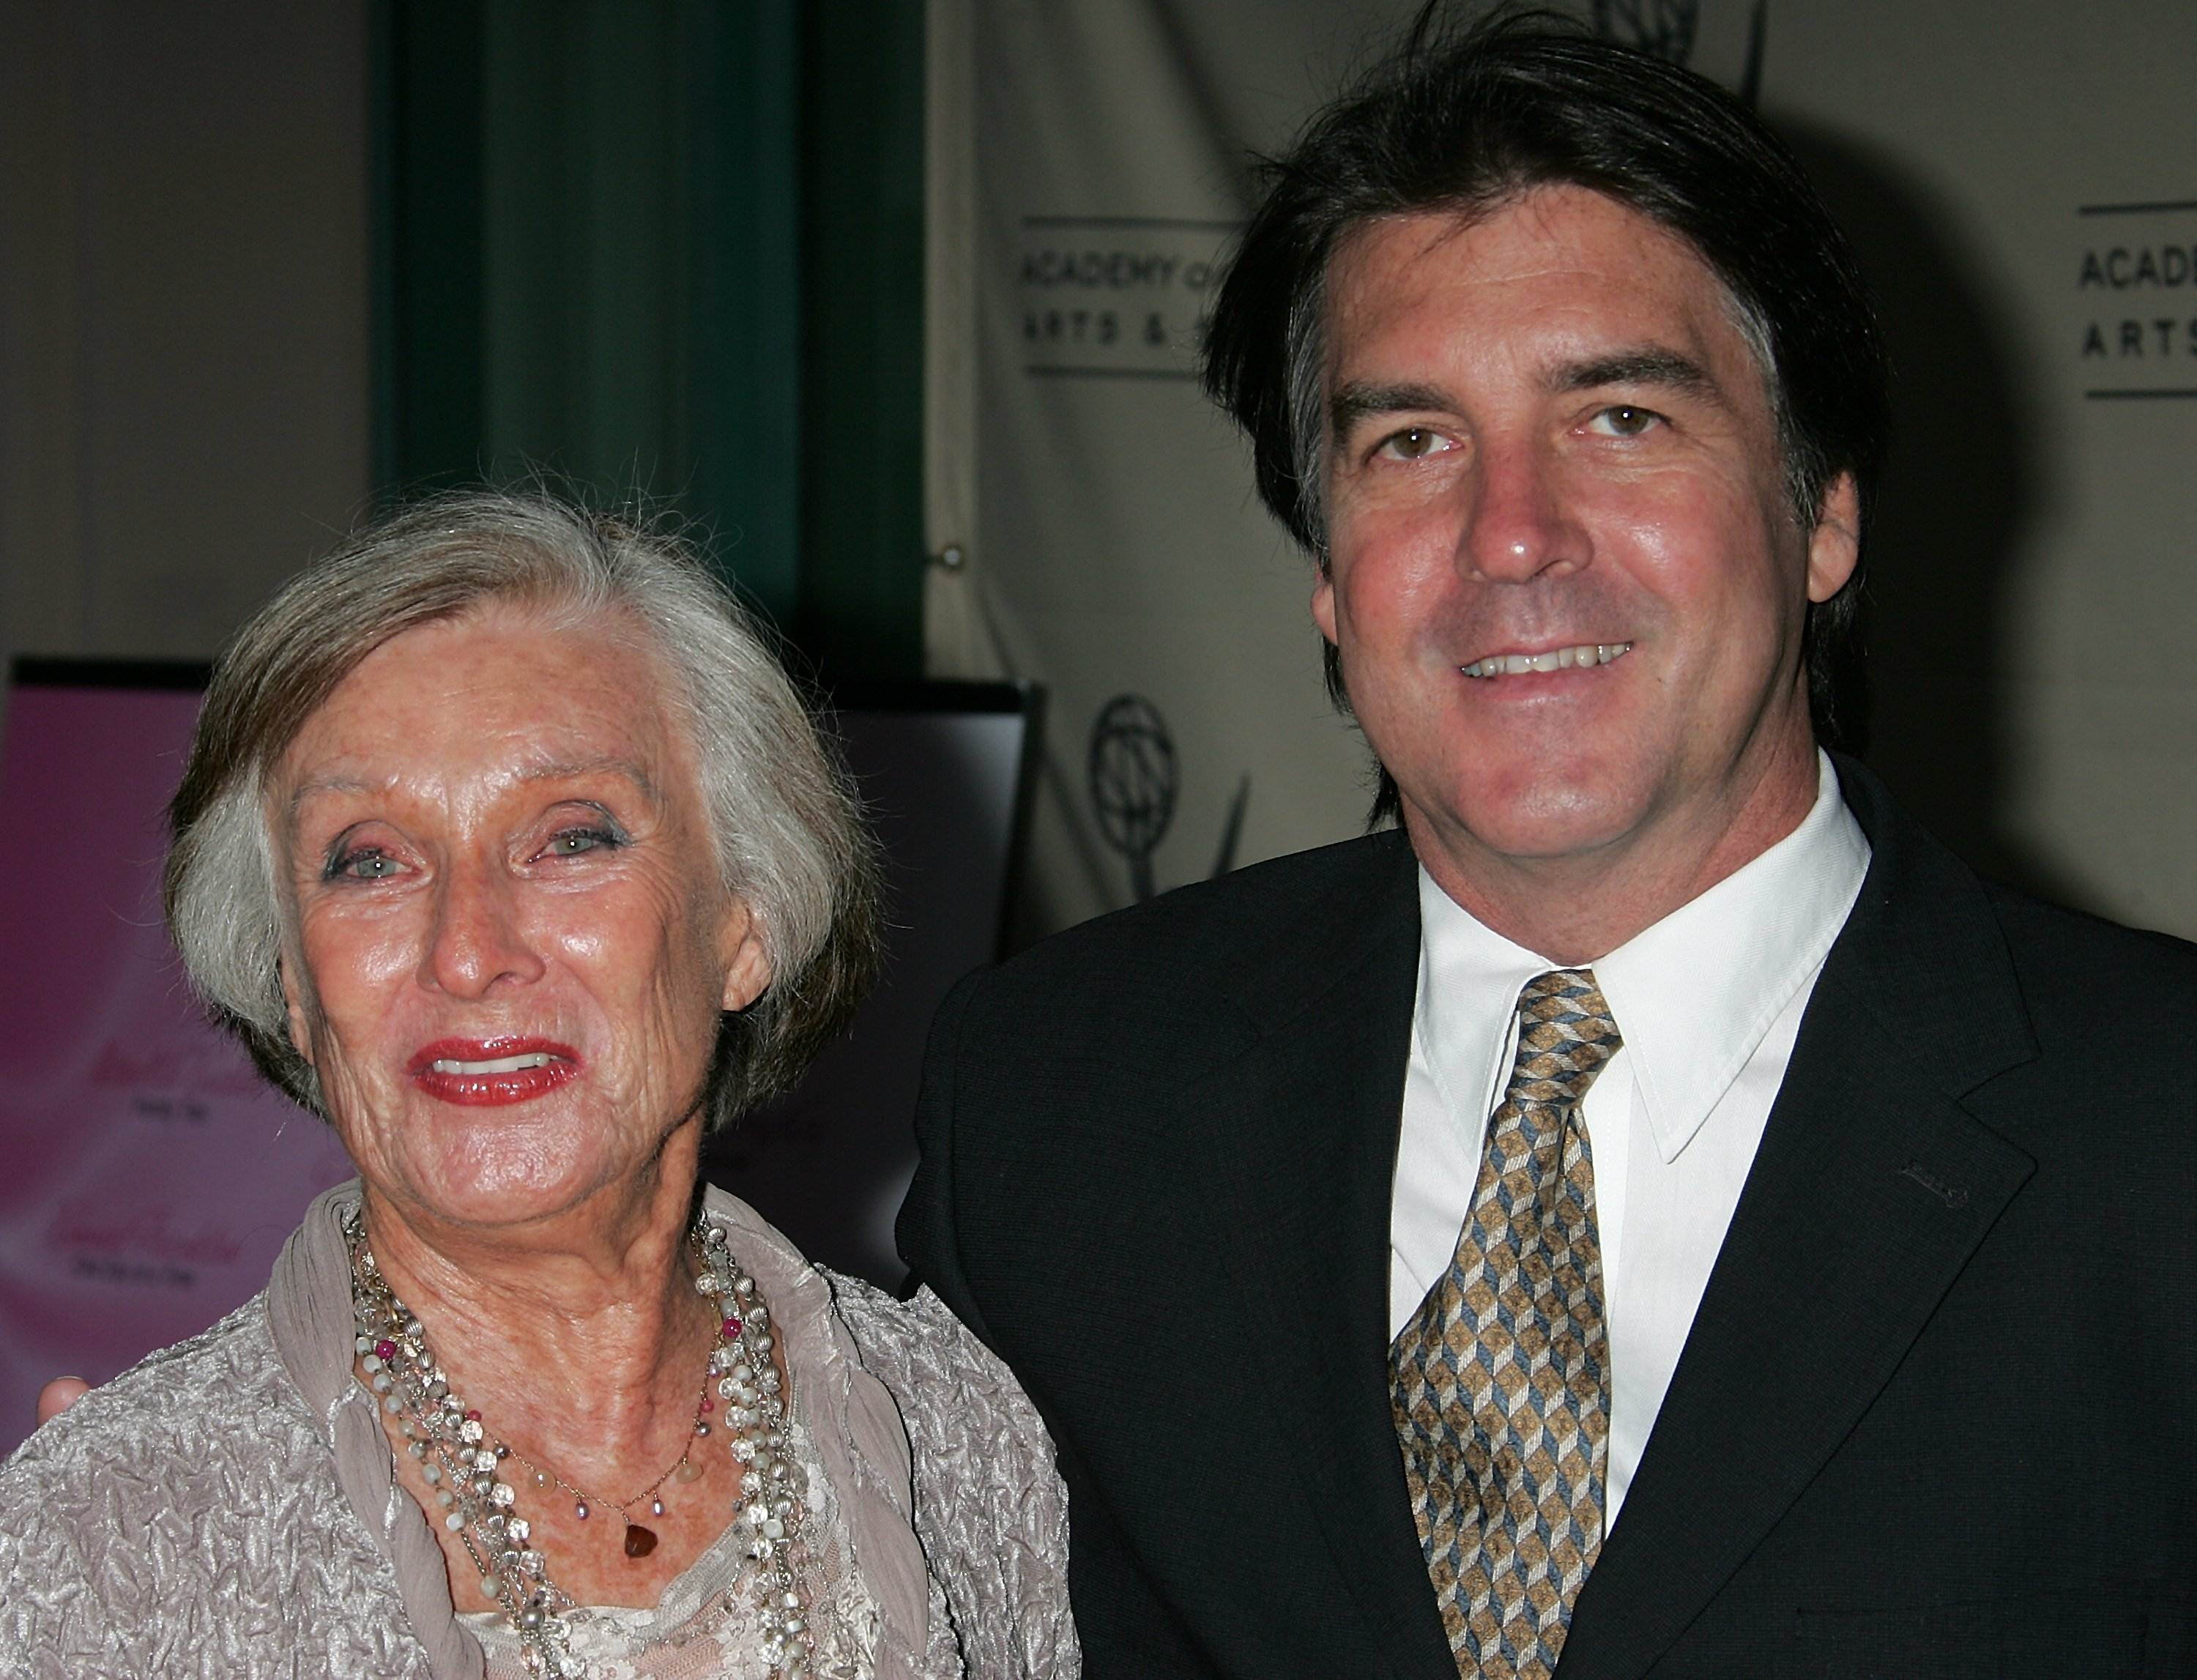 Cloris Leachman and her son George Englund Jr. attend 'A Mother's Day Salute to TV Moms' at the Academy of Television Arts & Sciences on May 6, 2008 in North Hollywood, California | Photo: Getty Images